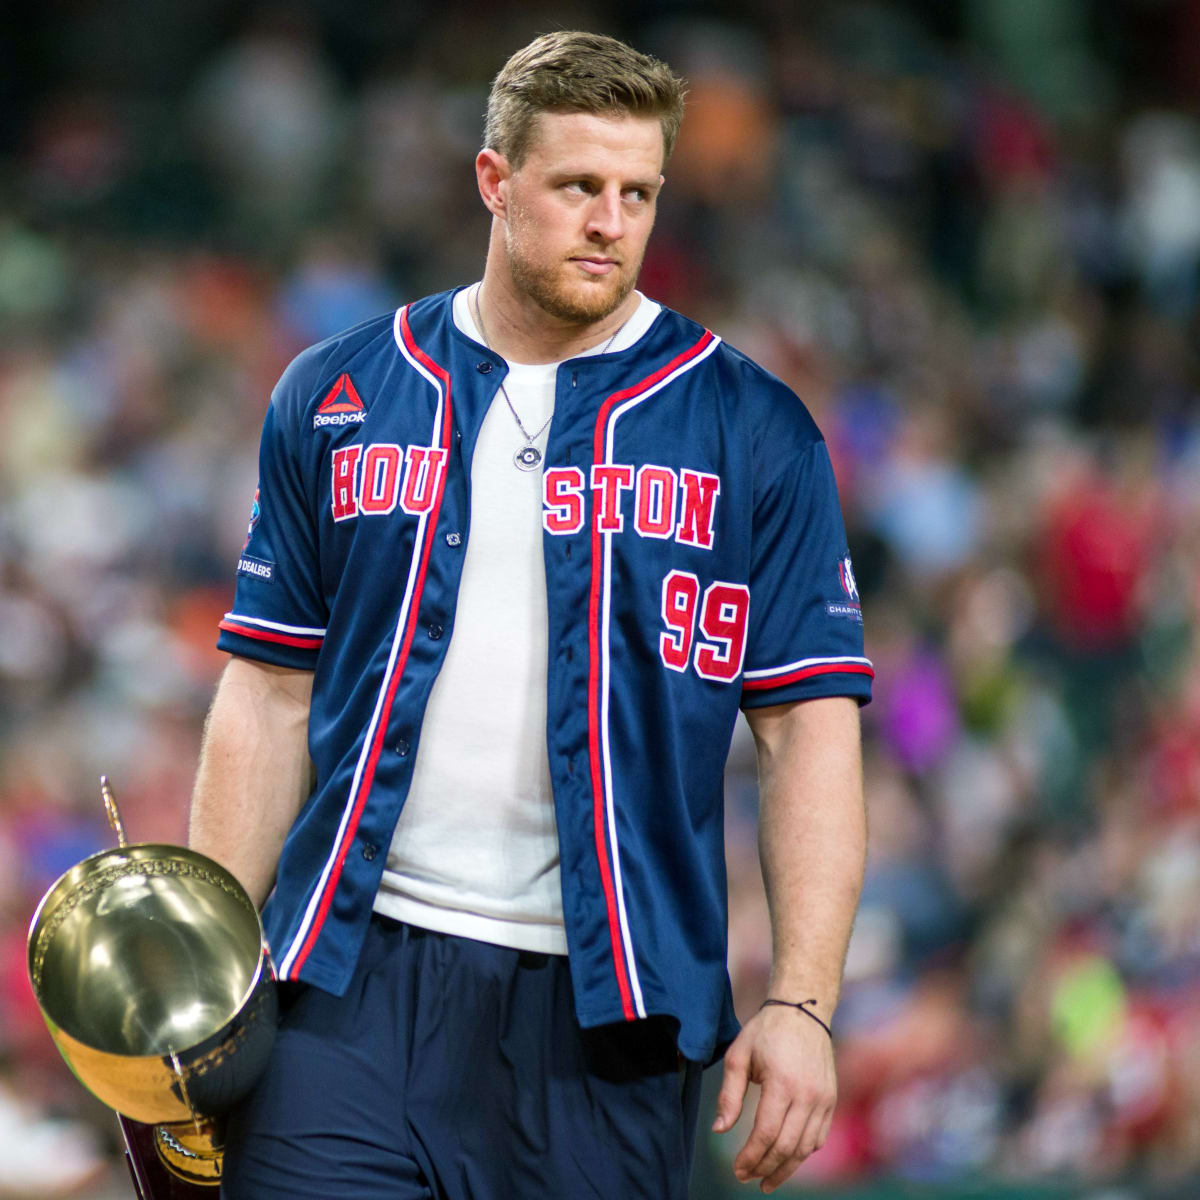 Houston, 5th annual JJ Watt Charity Classic, May 2017, J.J. Watt and trophy